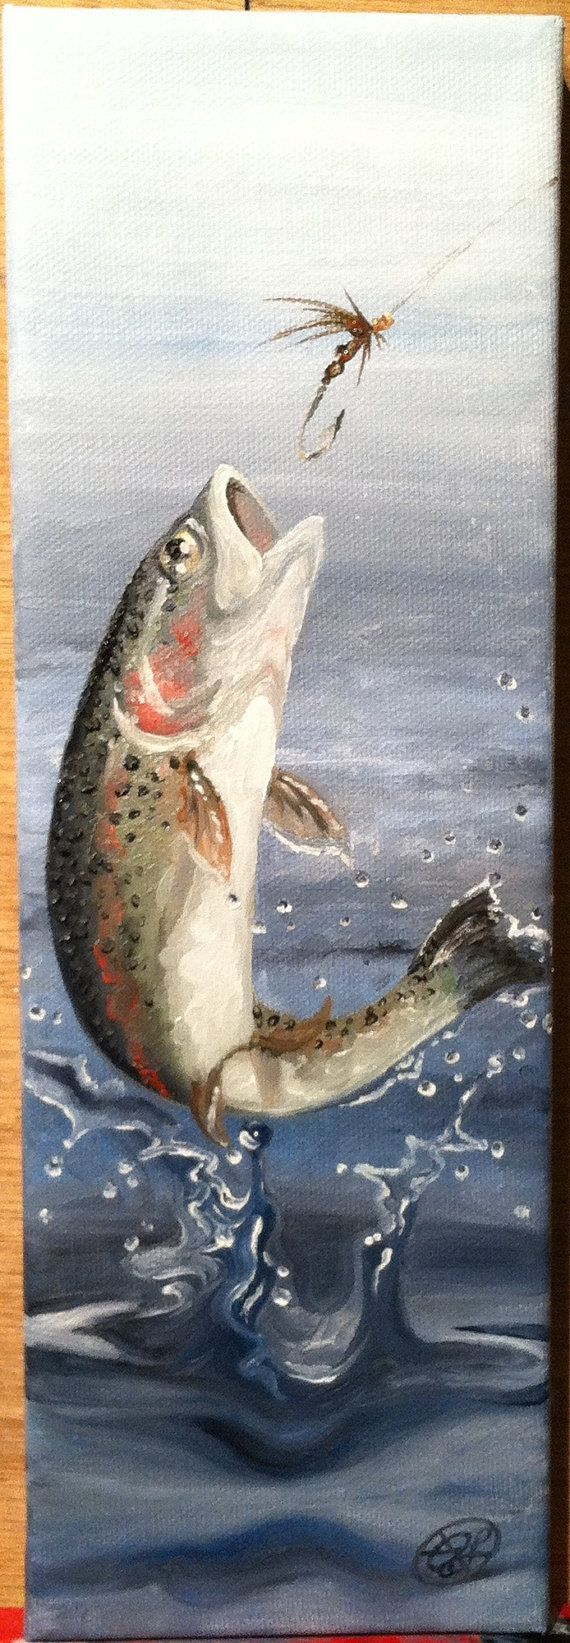 rainbow trout 4 pinterest rainbow trout trout and rainbows